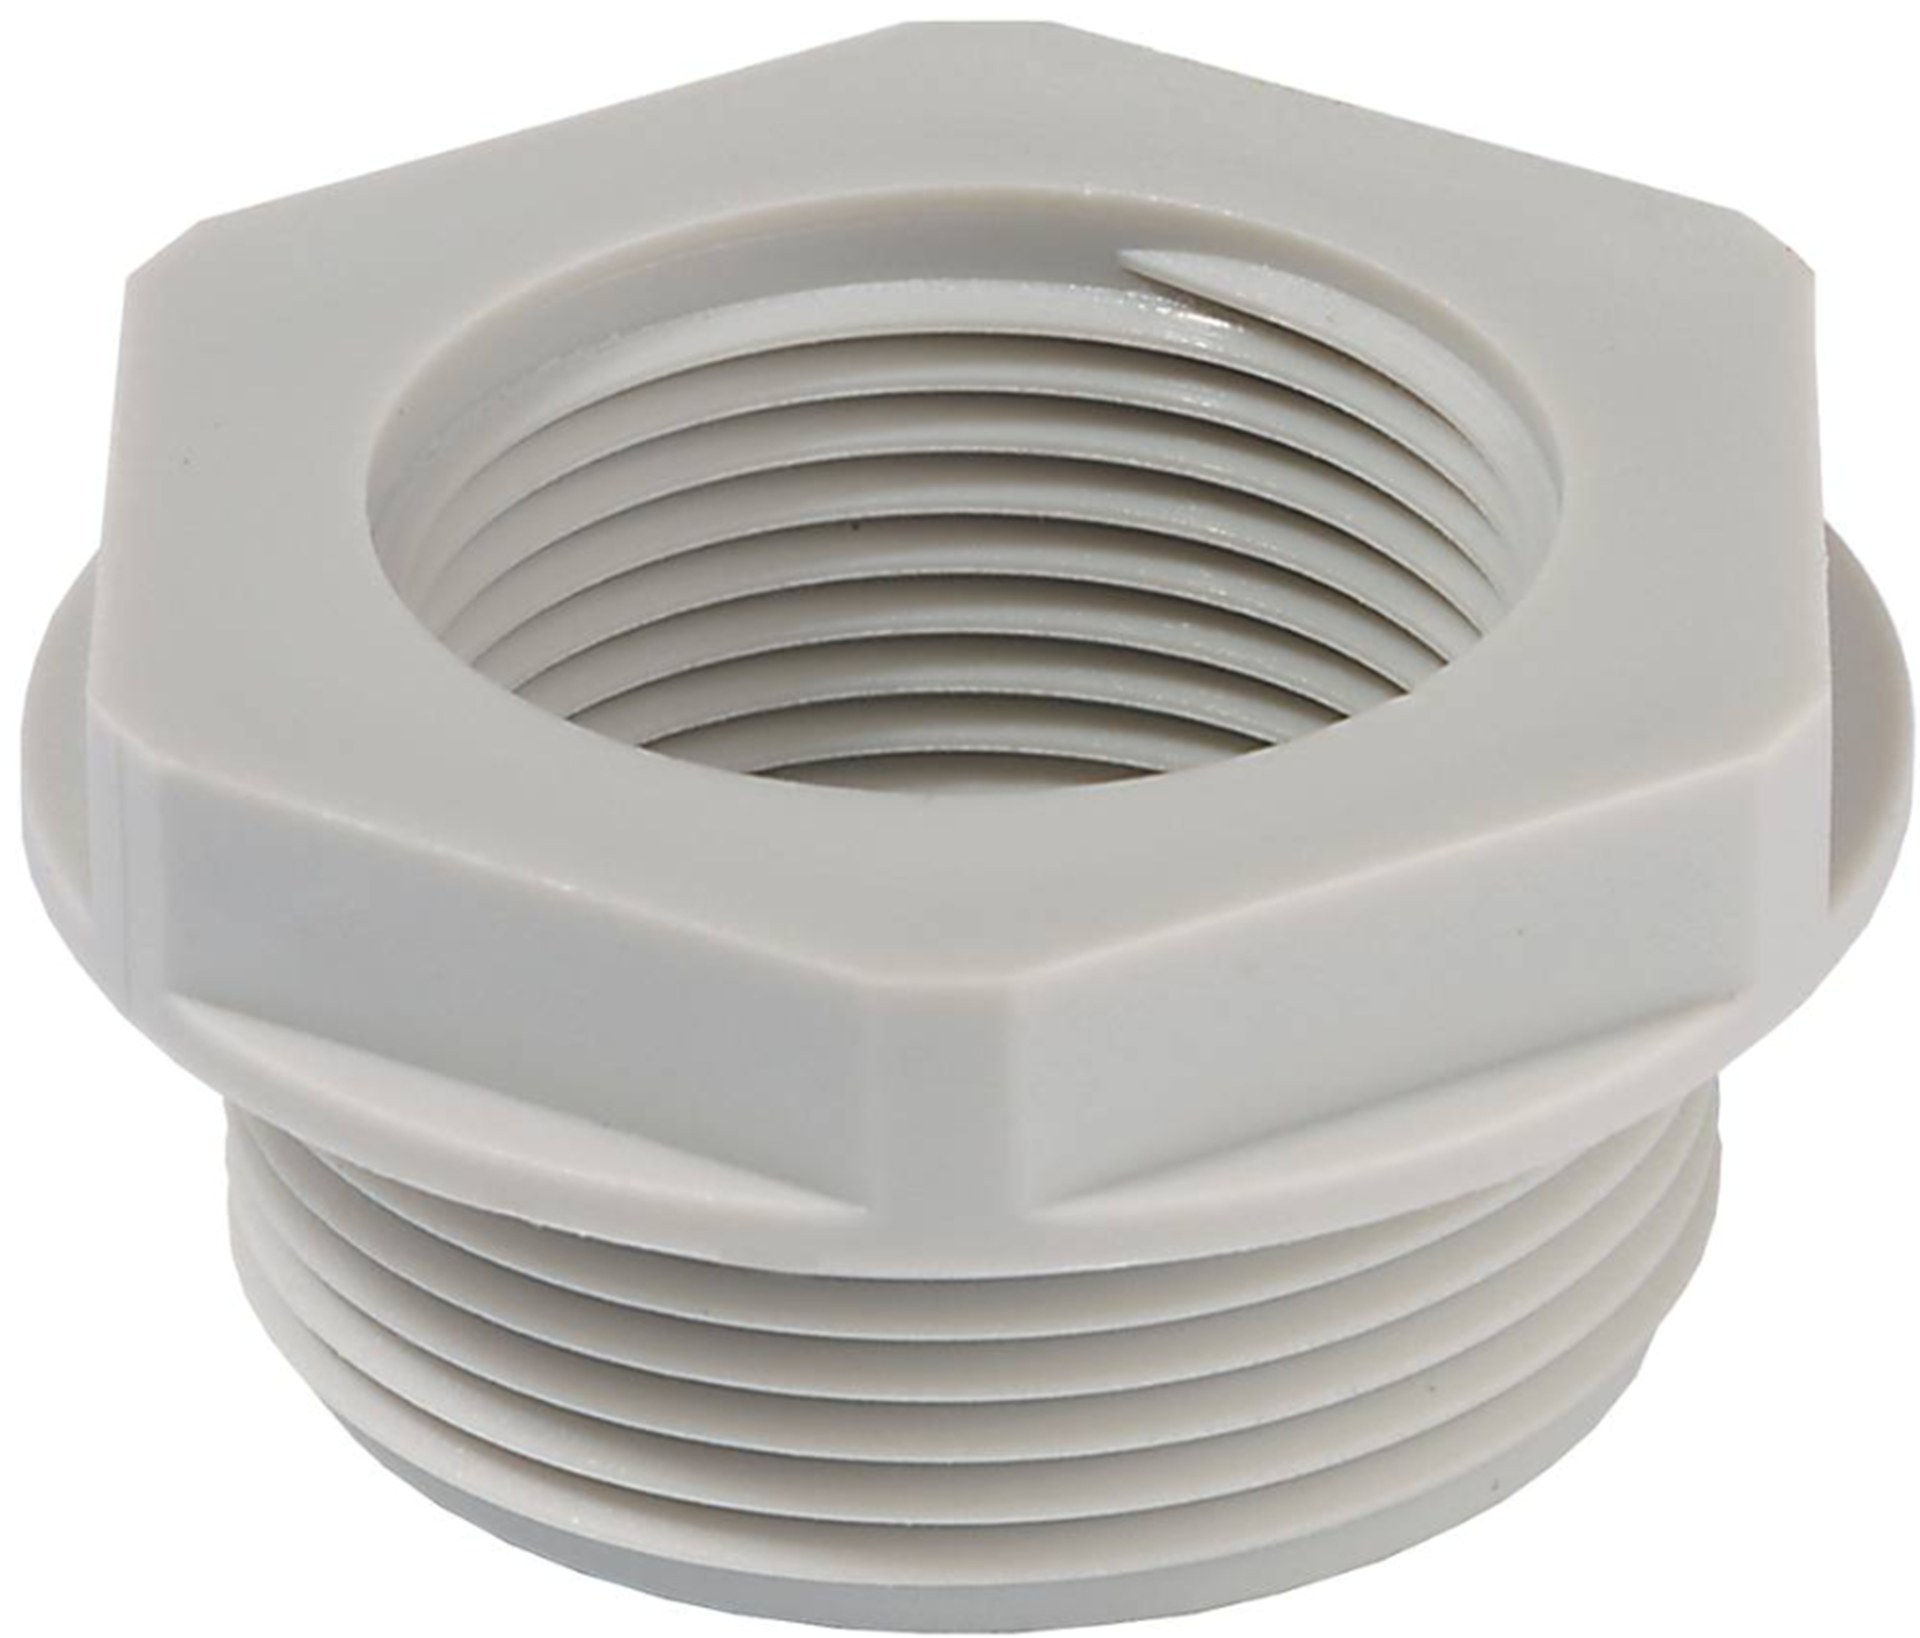 Wiska KRM 20/12 Reduction Adapter LG 10063578